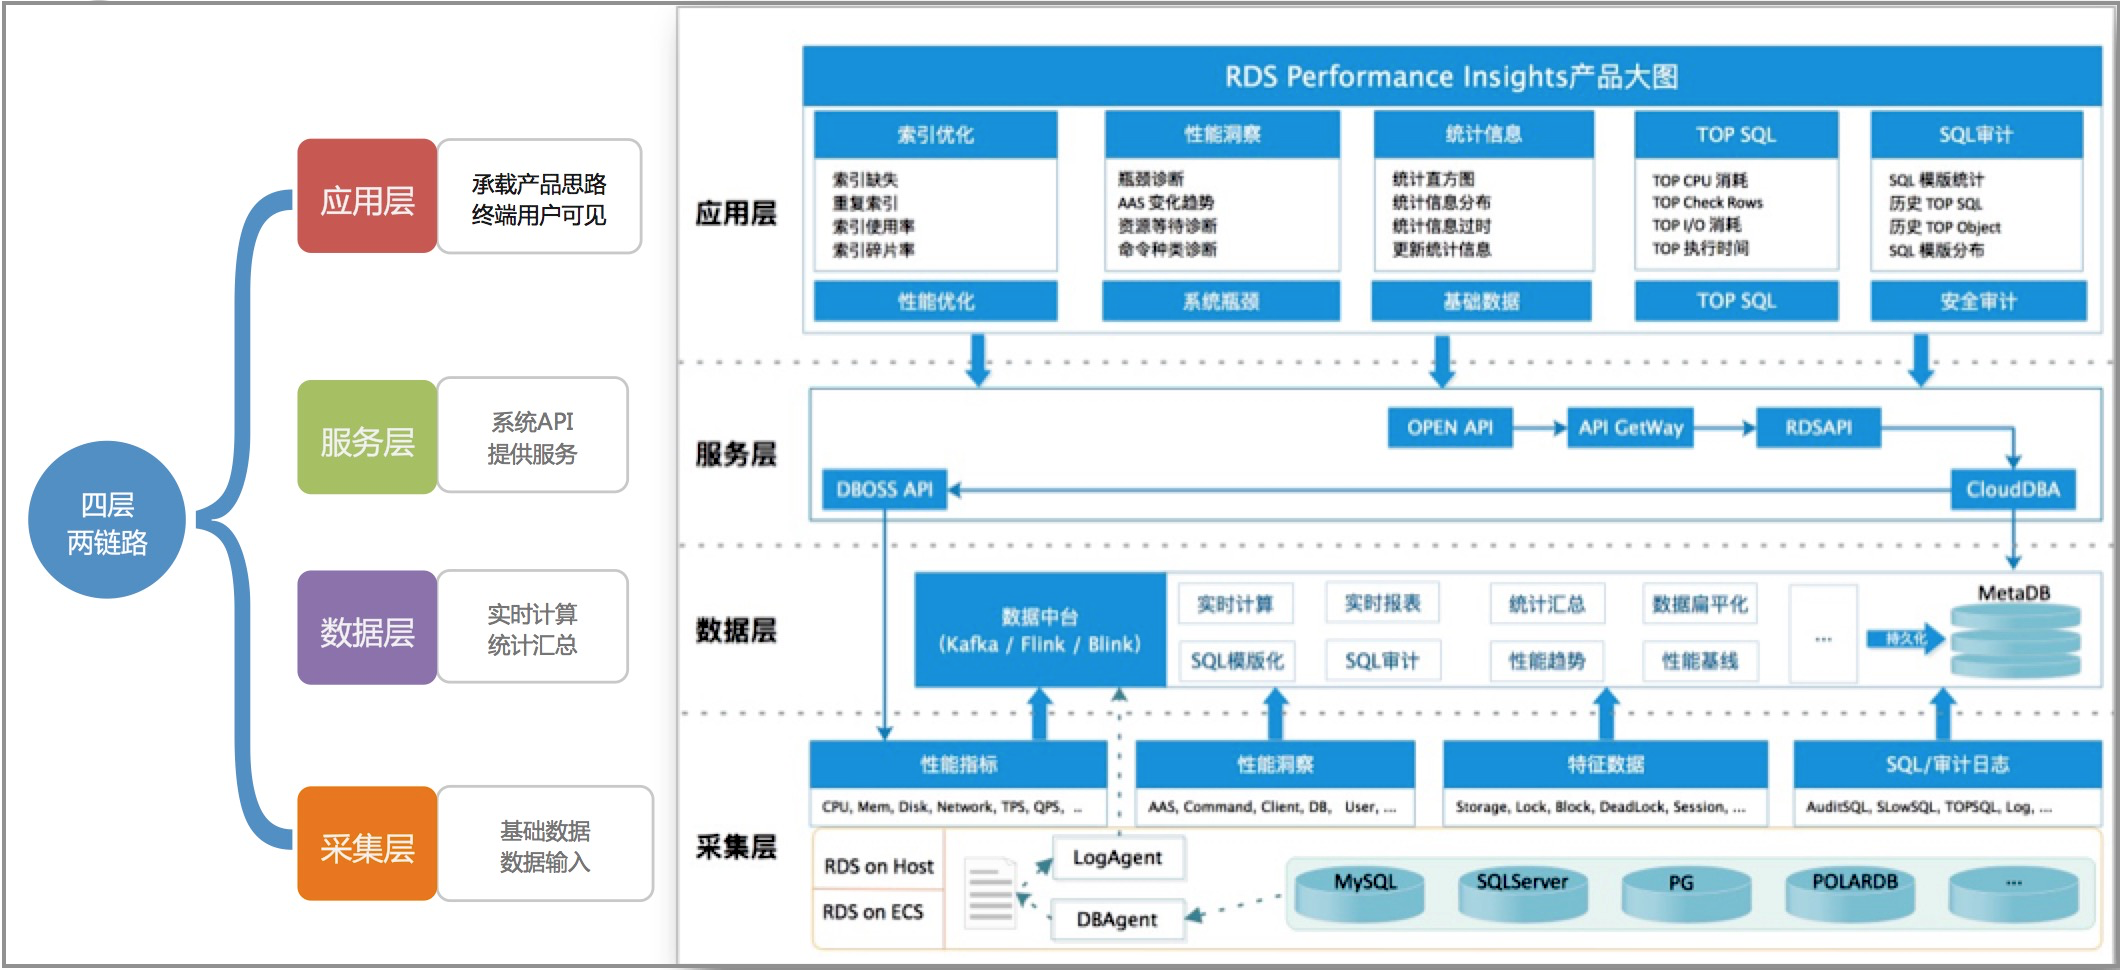 PerformanceInsights_架构.png